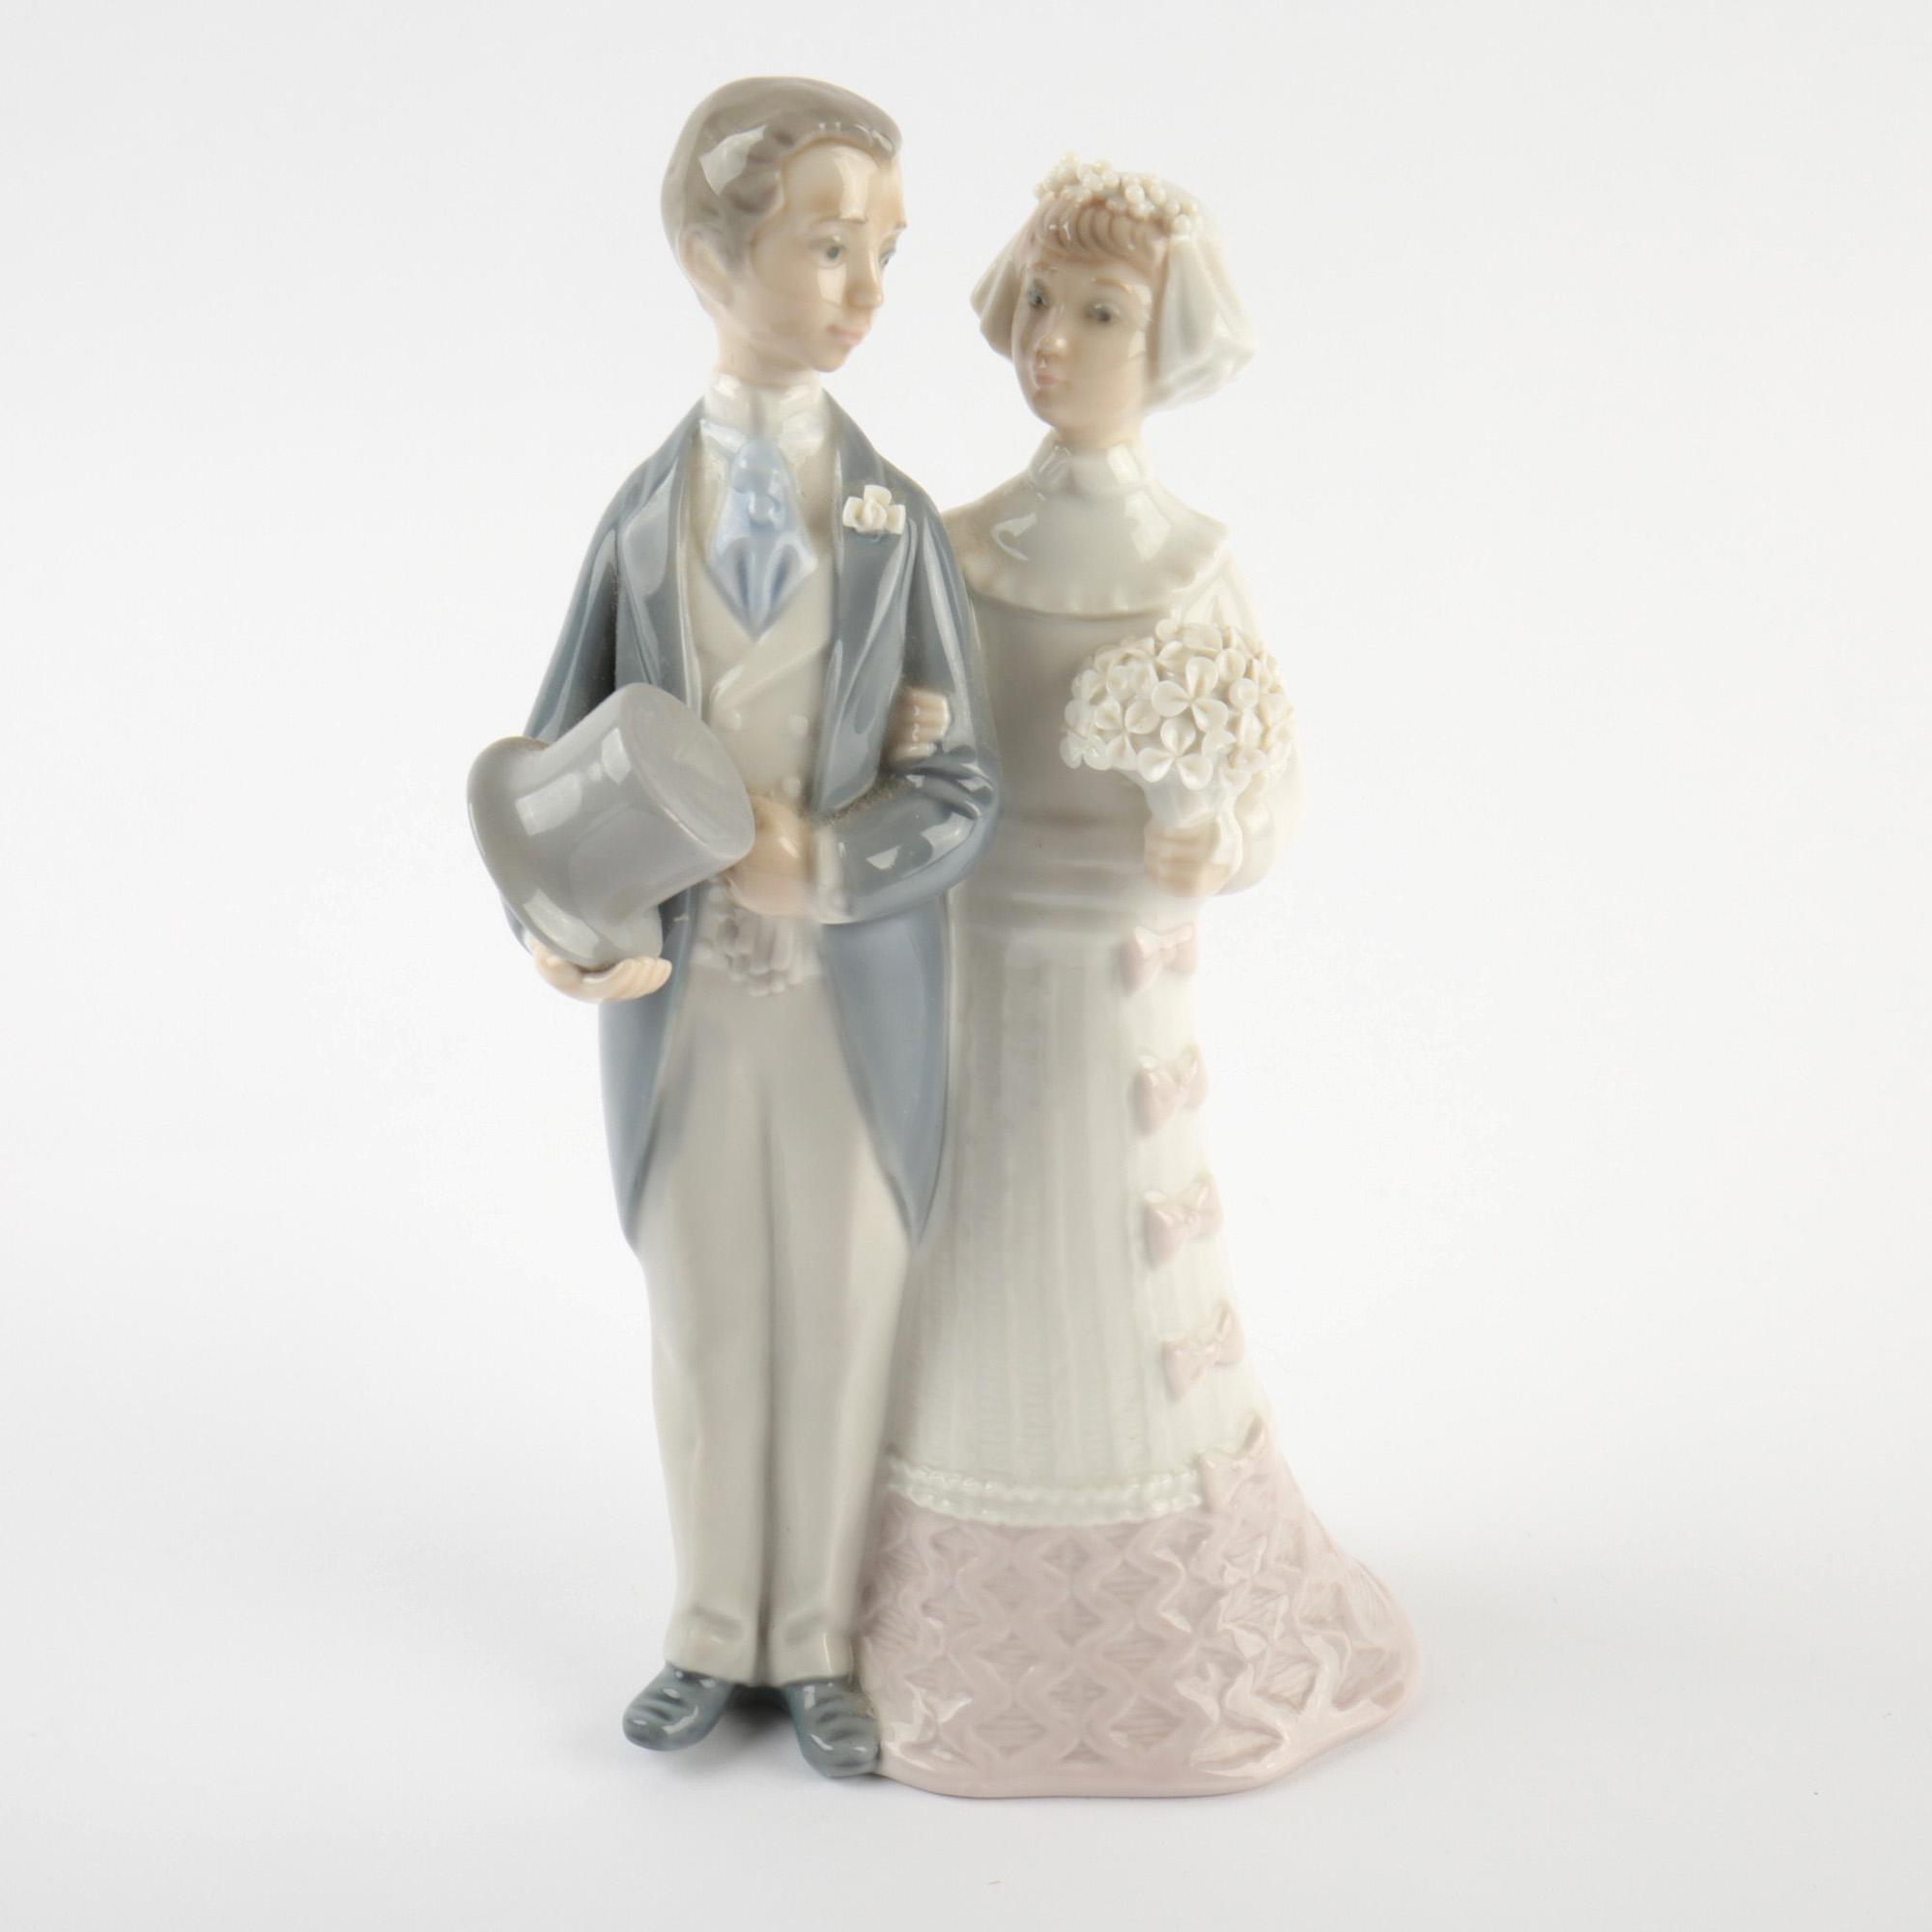 Lladr     Bride and Groom Porcelain Wedding Cake Topper   EBTH Lladr     Bride and Groom Porcelain Wedding Cake Topper